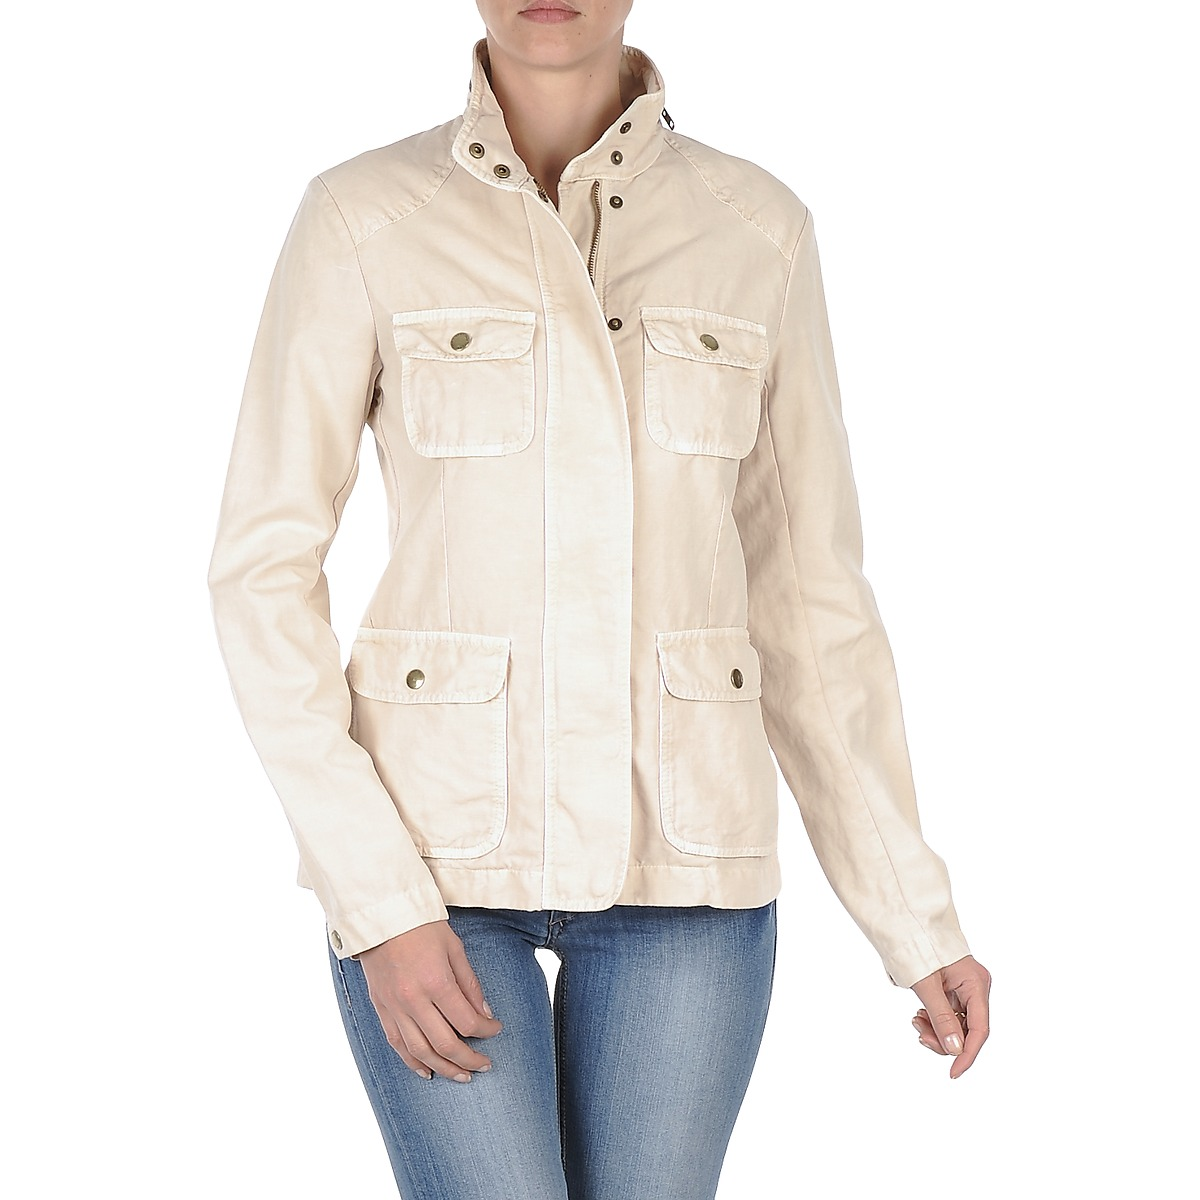 Gant COTTON LINEN 4PKT JACKET Crema